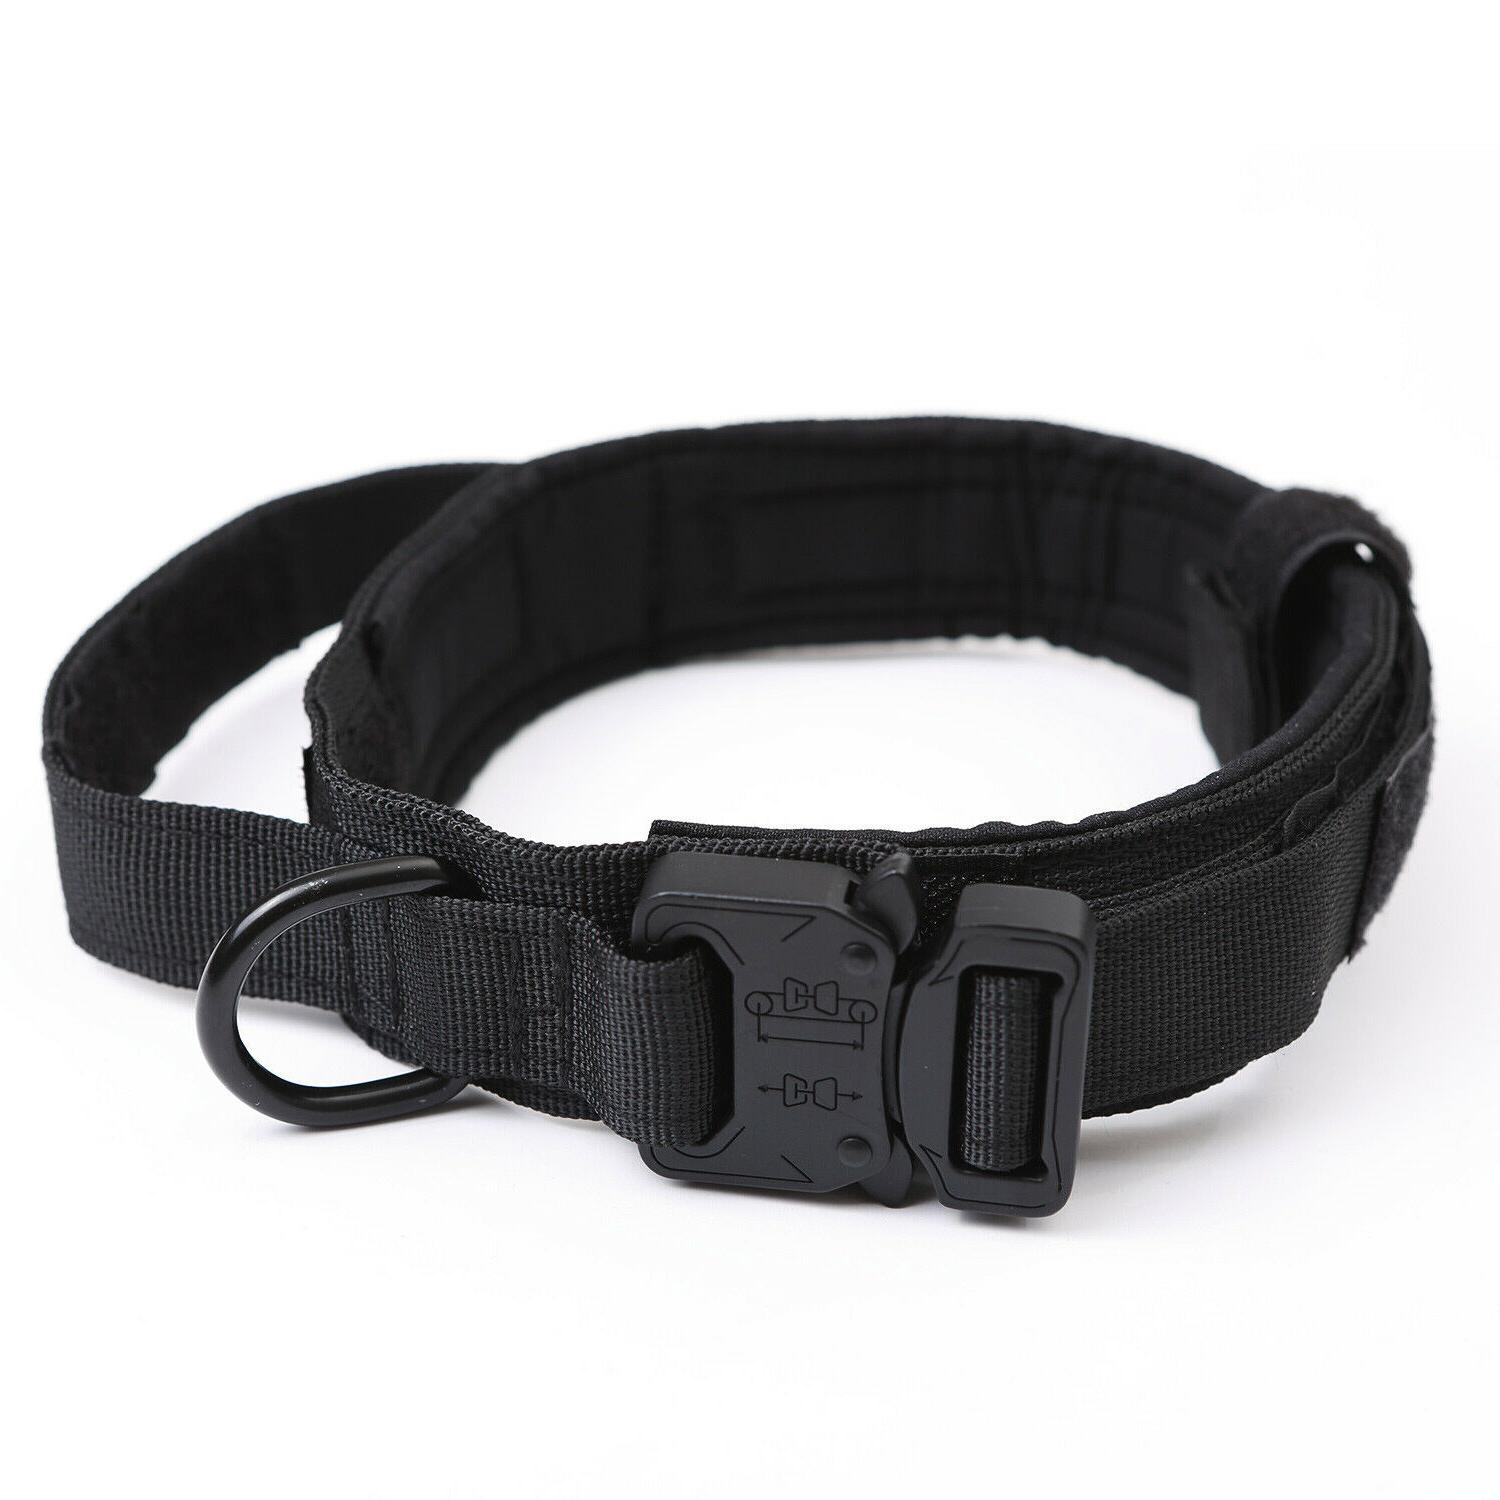 Tactical Collar+Leash for L Duty